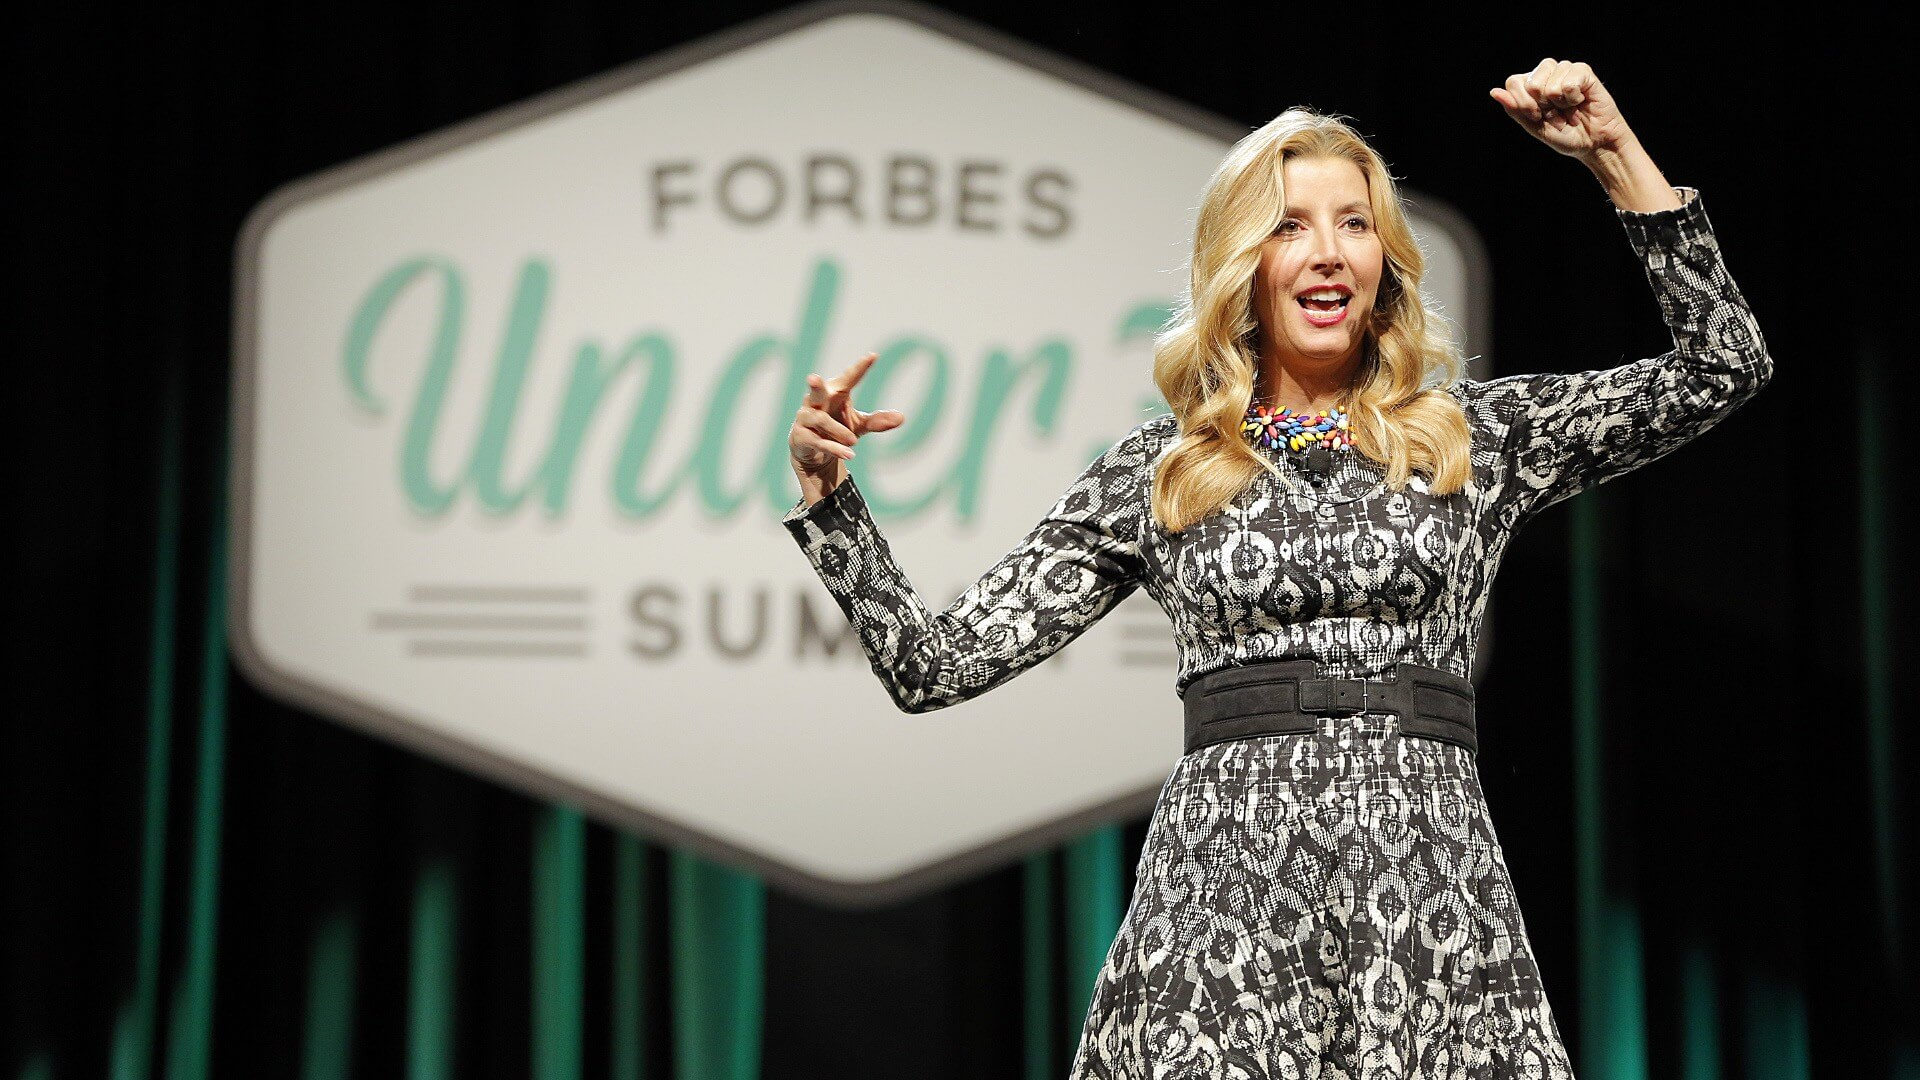 Sara Blakely is an american woman entrepreneur who founded Spanx